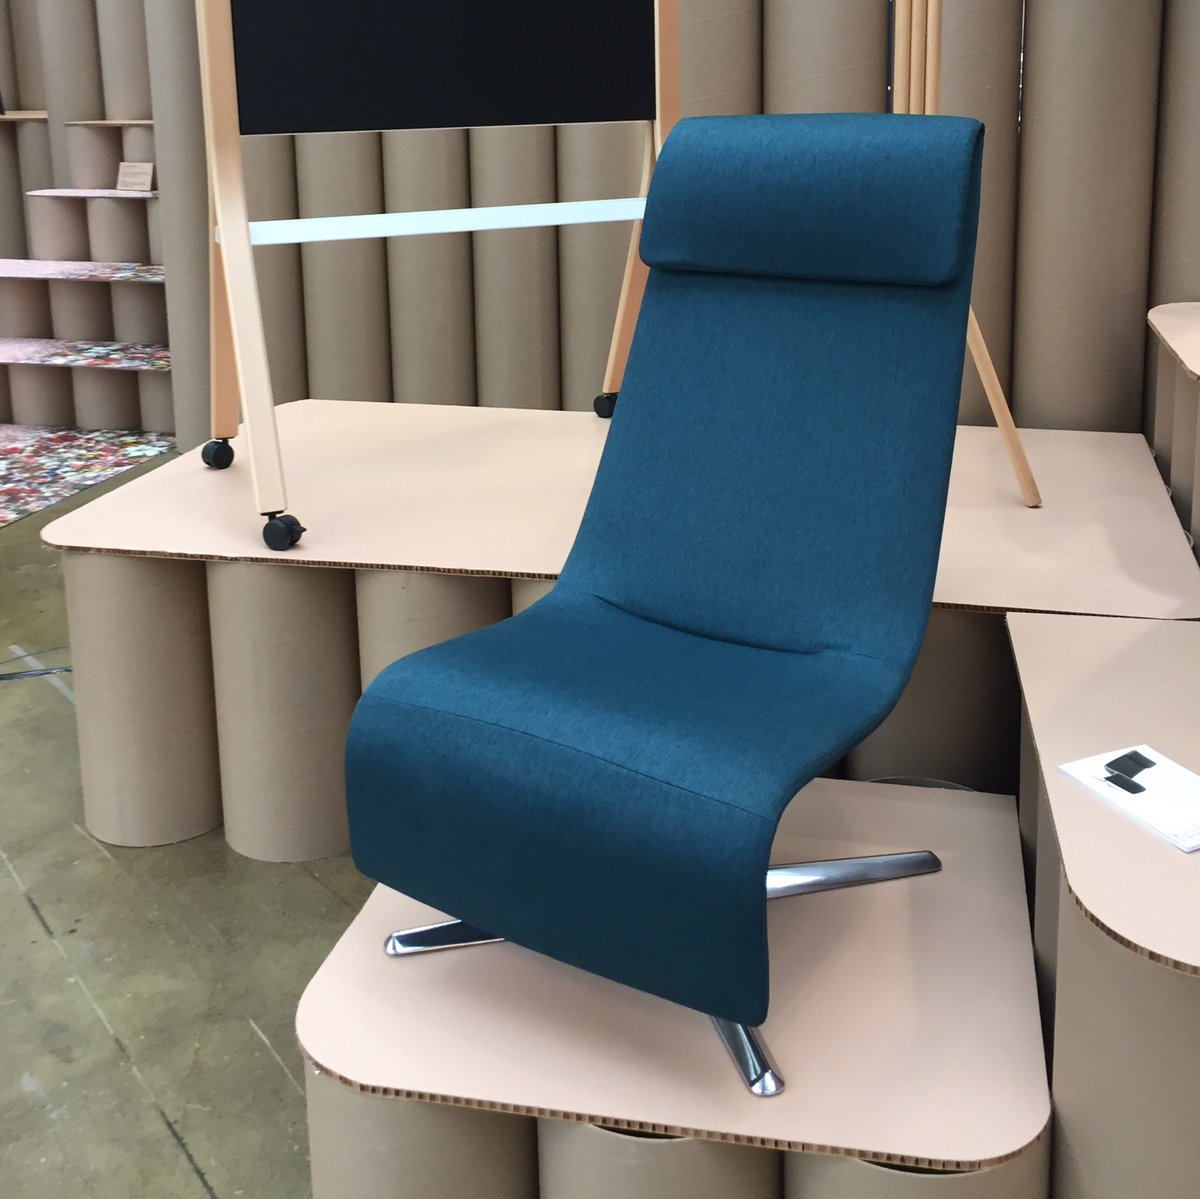 Marvelous Teknion On Twitter Visit Teknions Nearby Caraccident5 Cool Chair Designs And Ideas Caraccident5Info